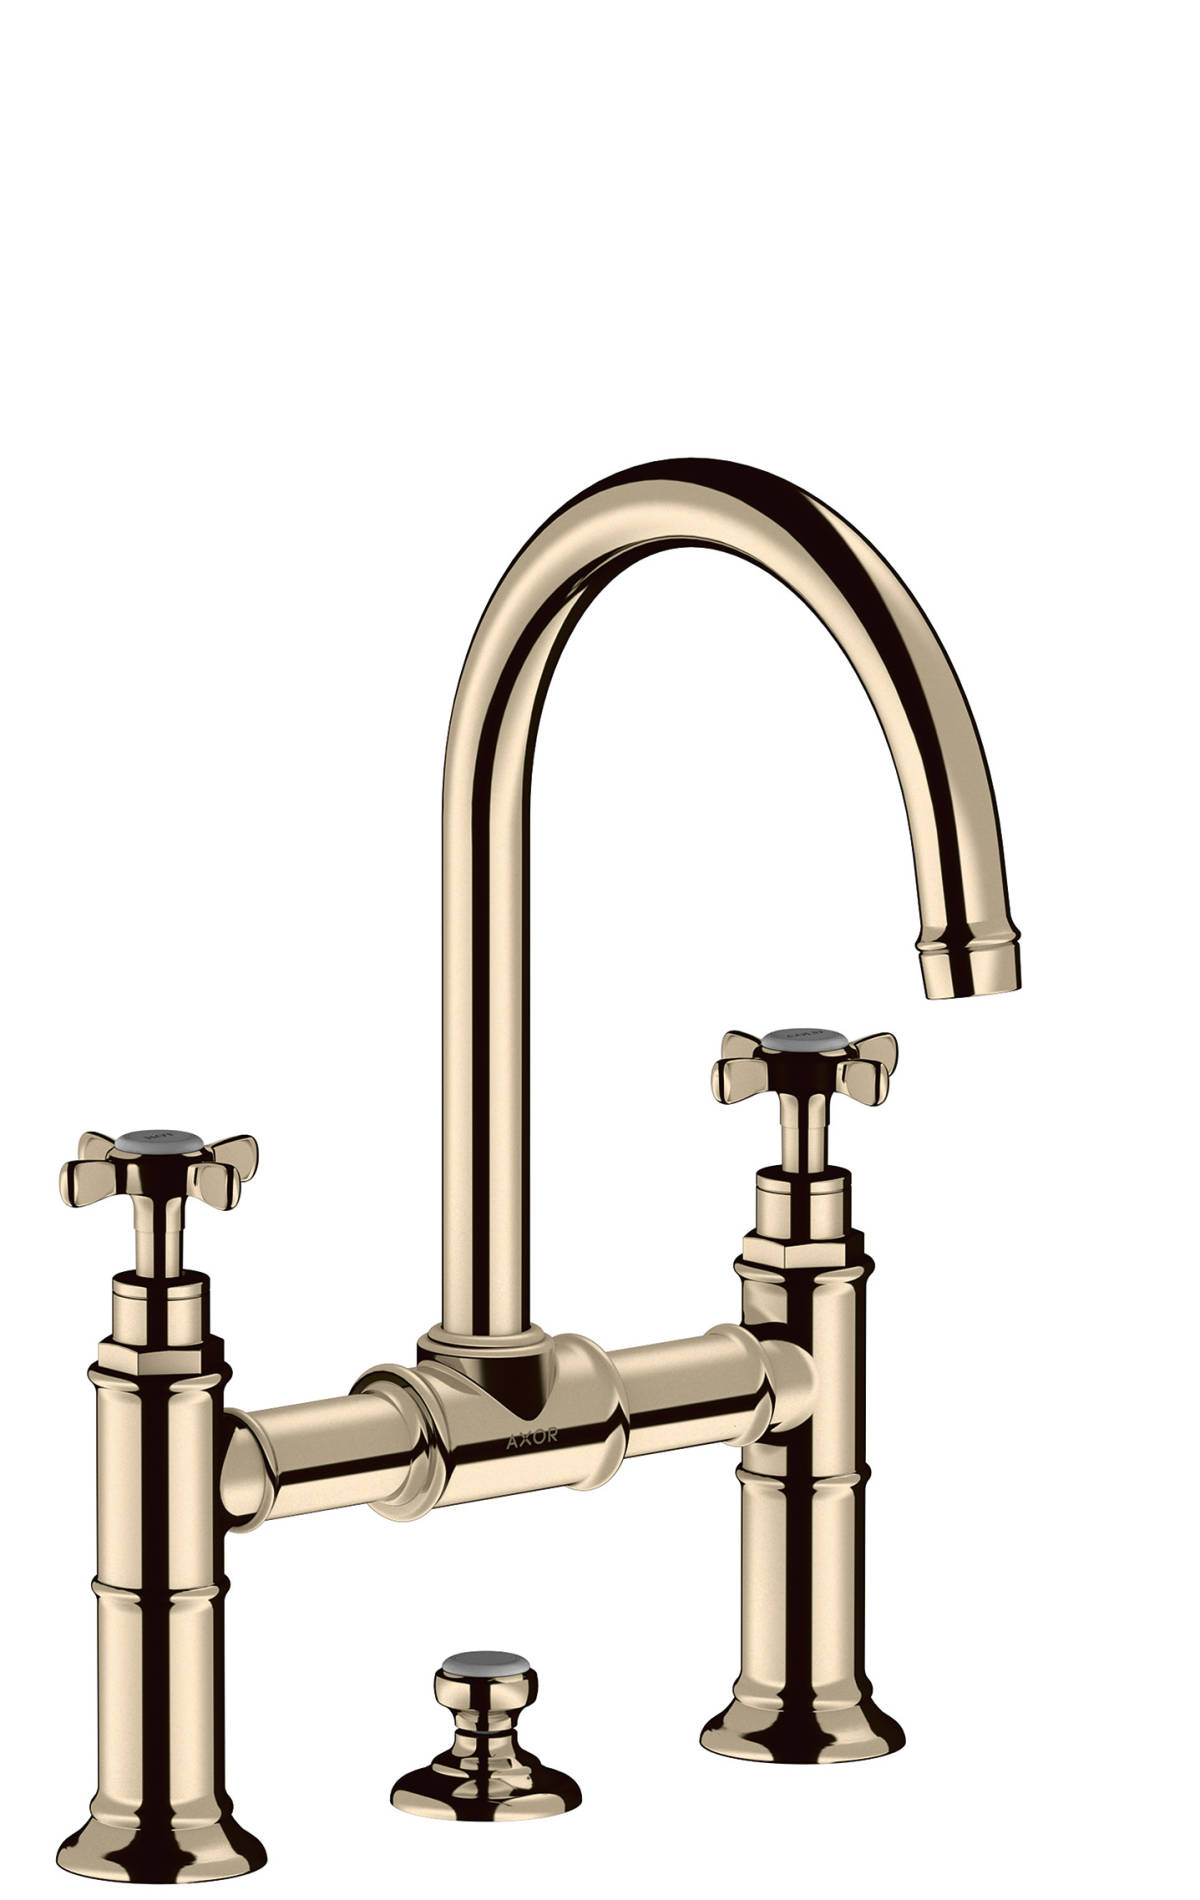 2-handle basin mixer 220 with cross handles and pop-up waste set, Polished Nickel, 16510830